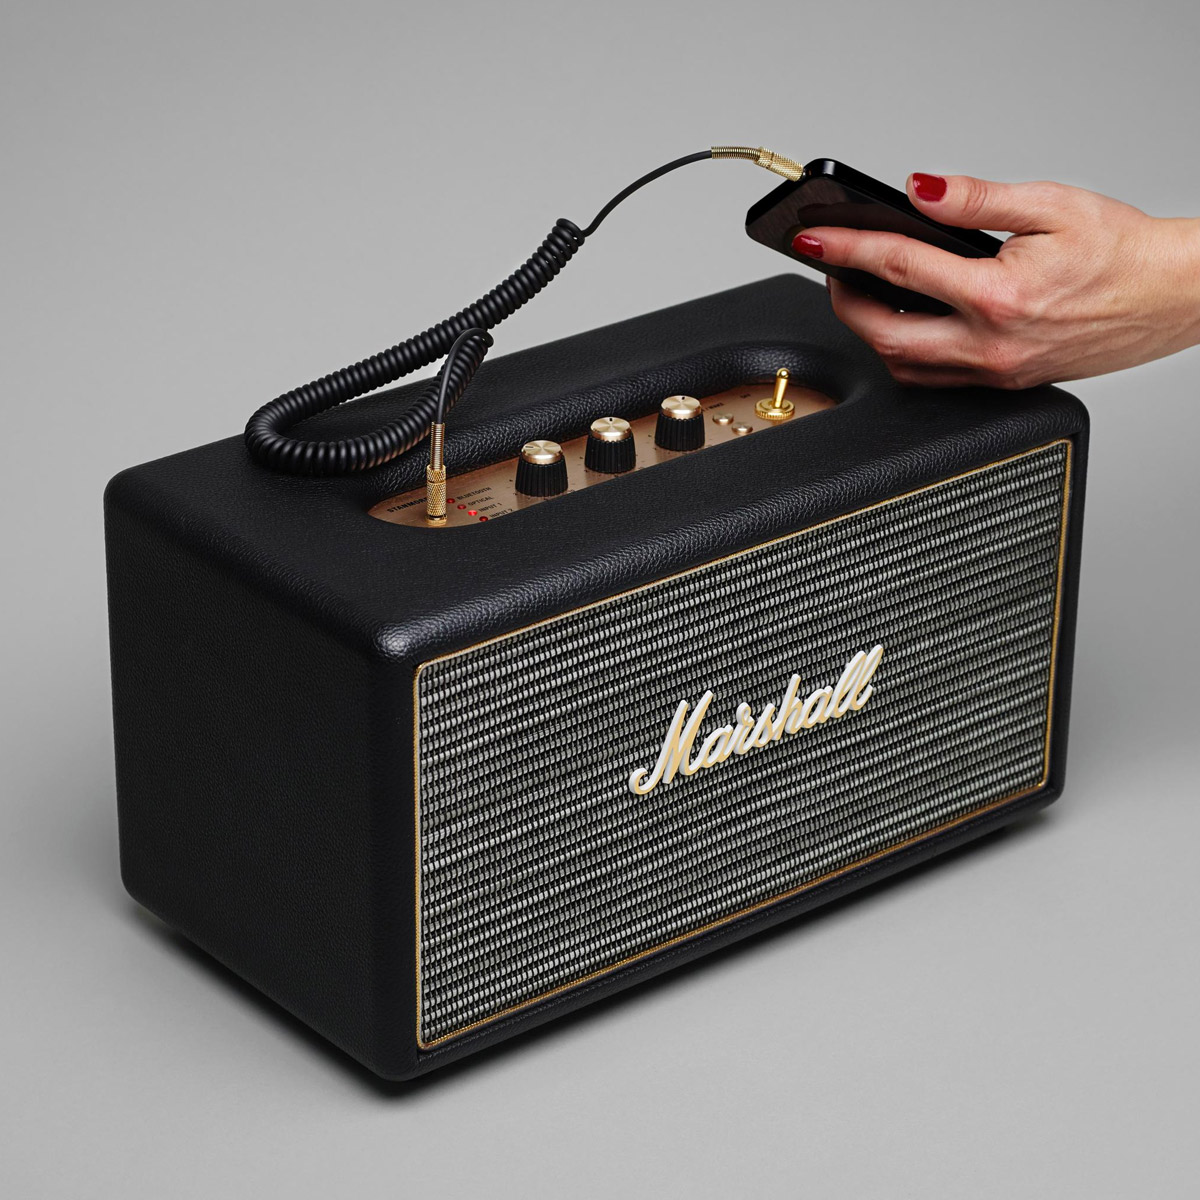 marshall stanmore wireless bluetooth speaker the green head. Black Bedroom Furniture Sets. Home Design Ideas